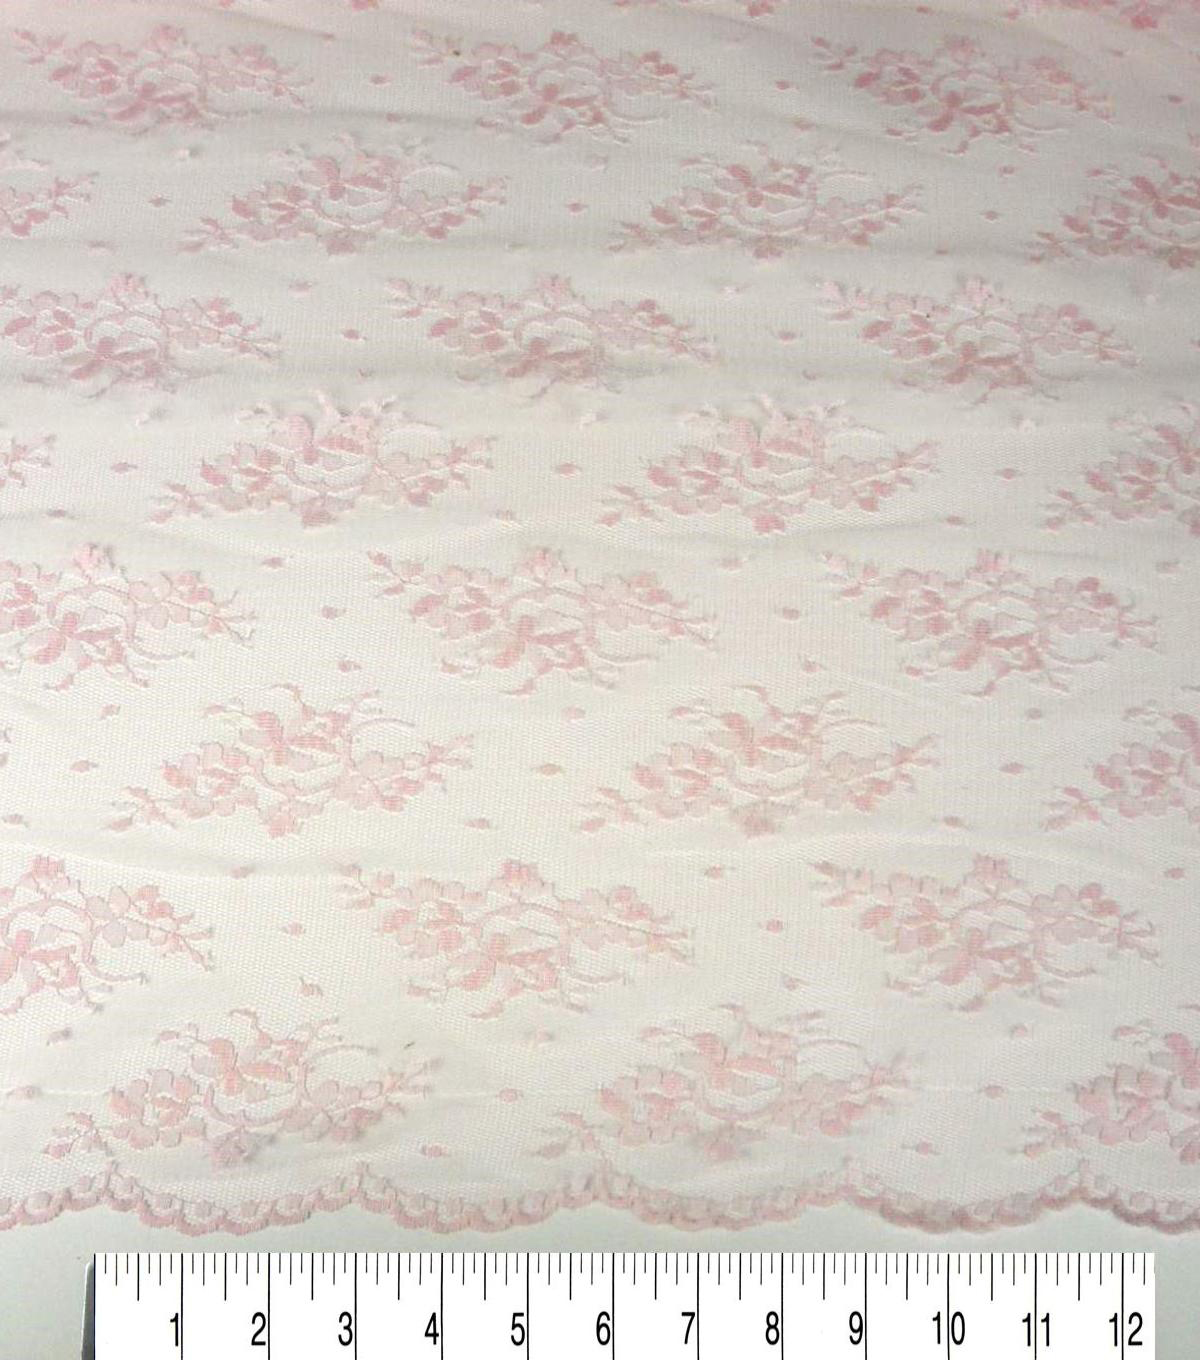 Casa Collection Chantilly Lace Fabric -Solids